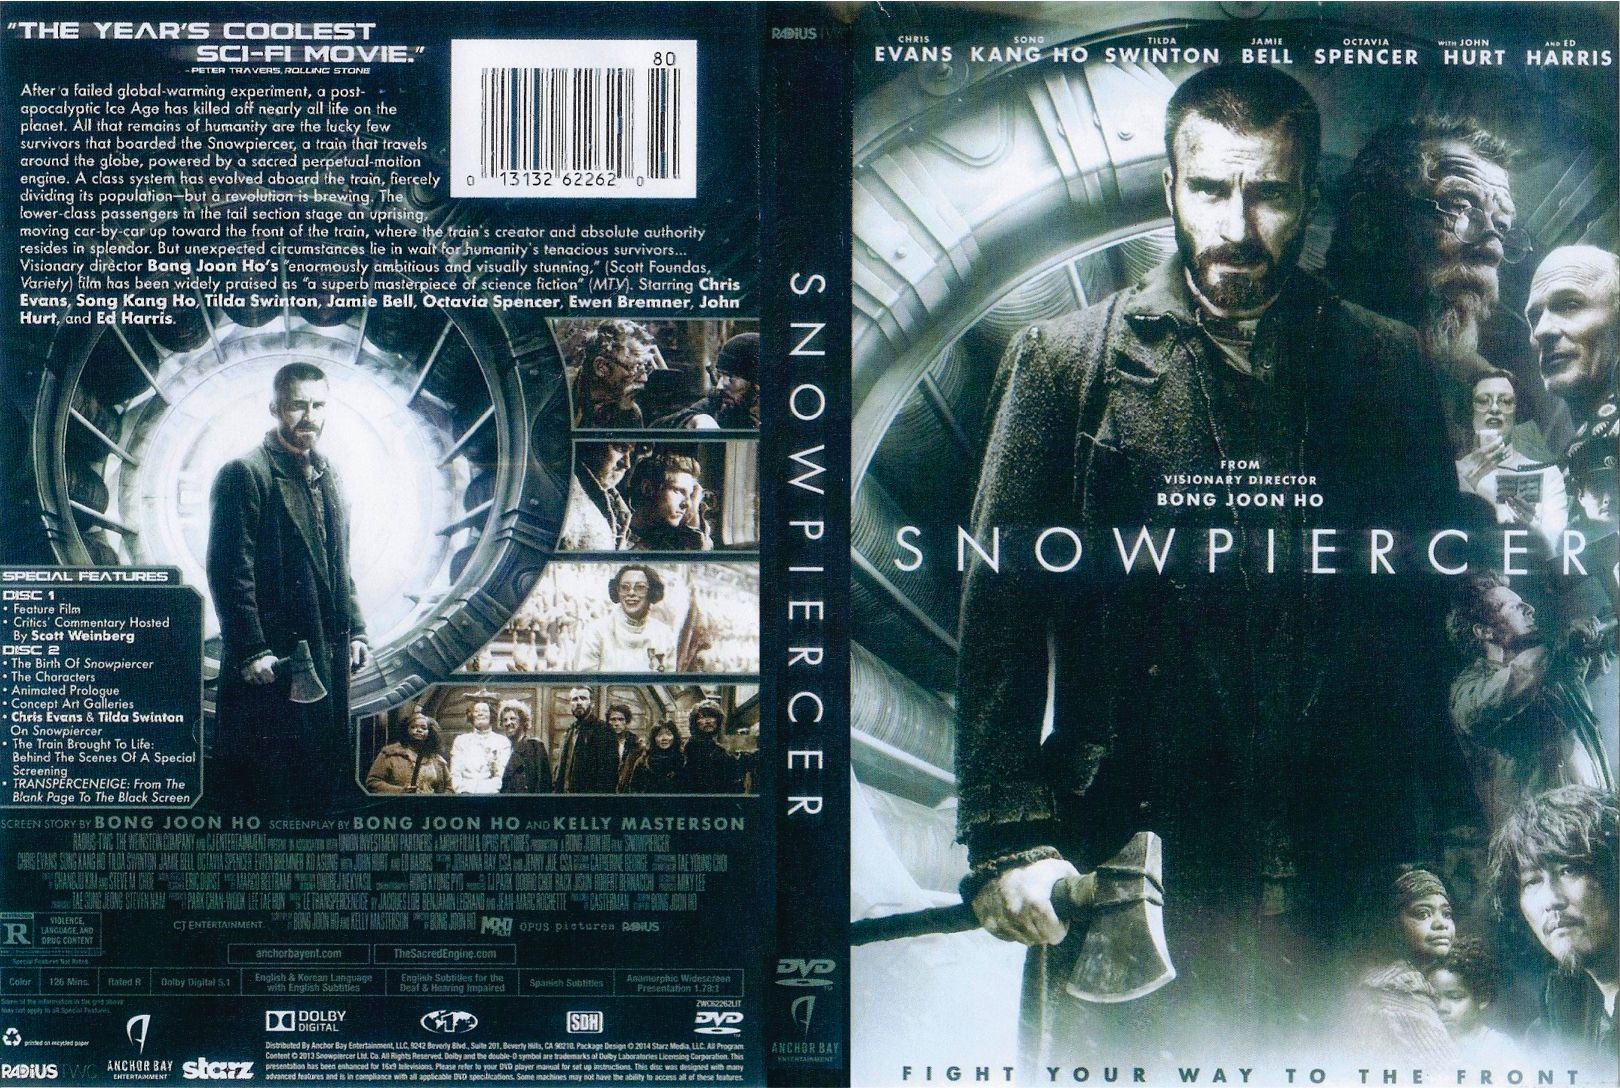 snowpiercer 2013 r1 front | DVD Covers | Cover Century